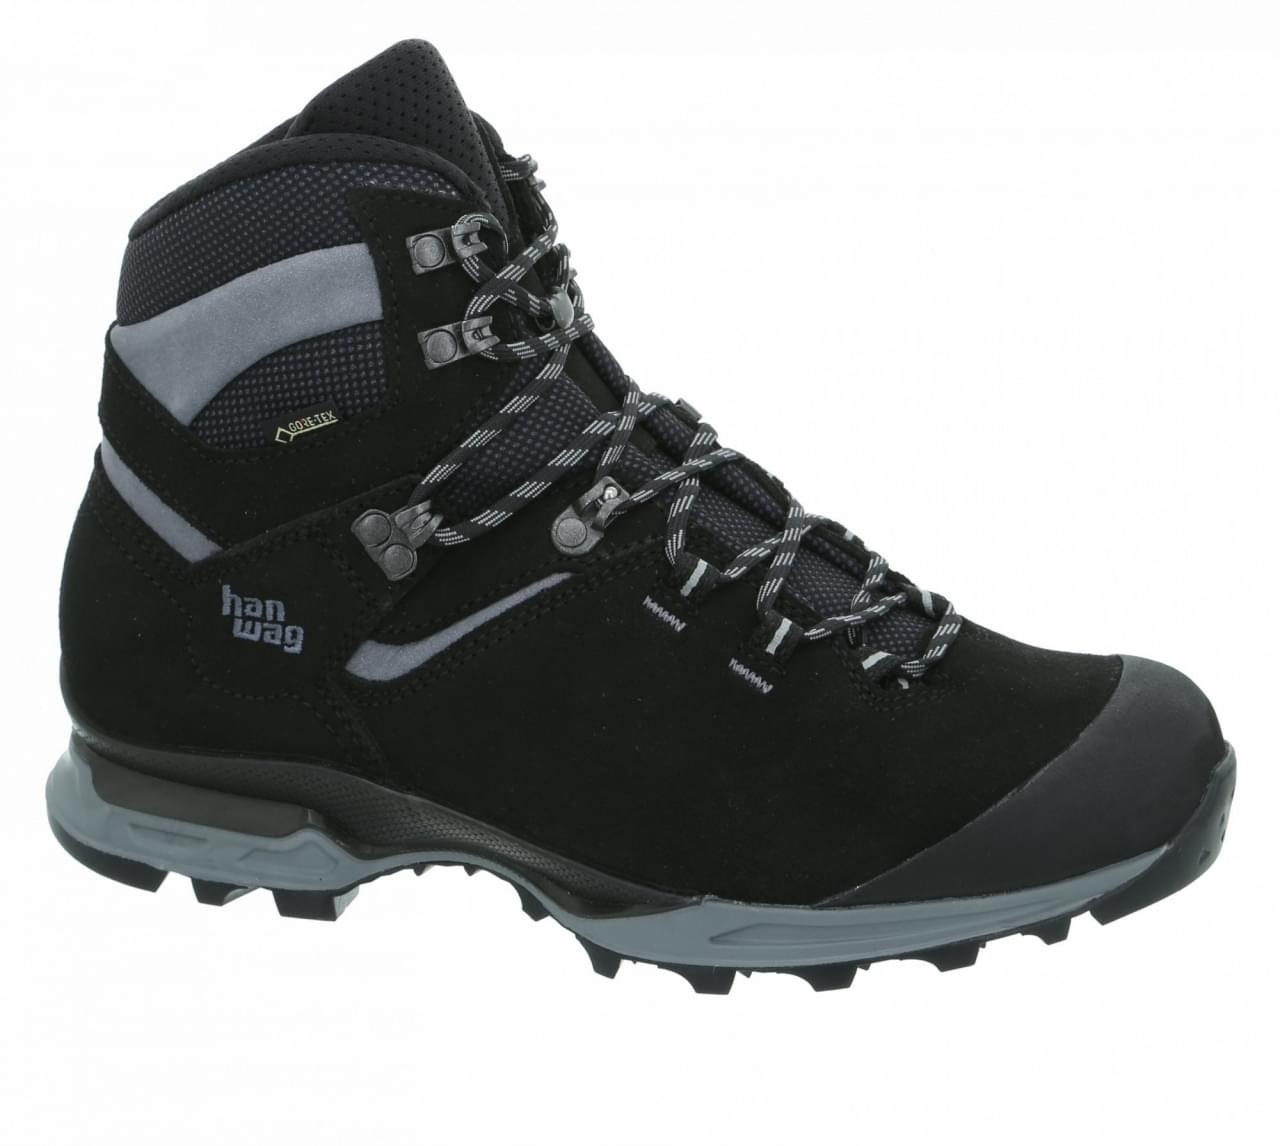 Hanwag Tatra Light Wide GTX Wandelschoen Heren